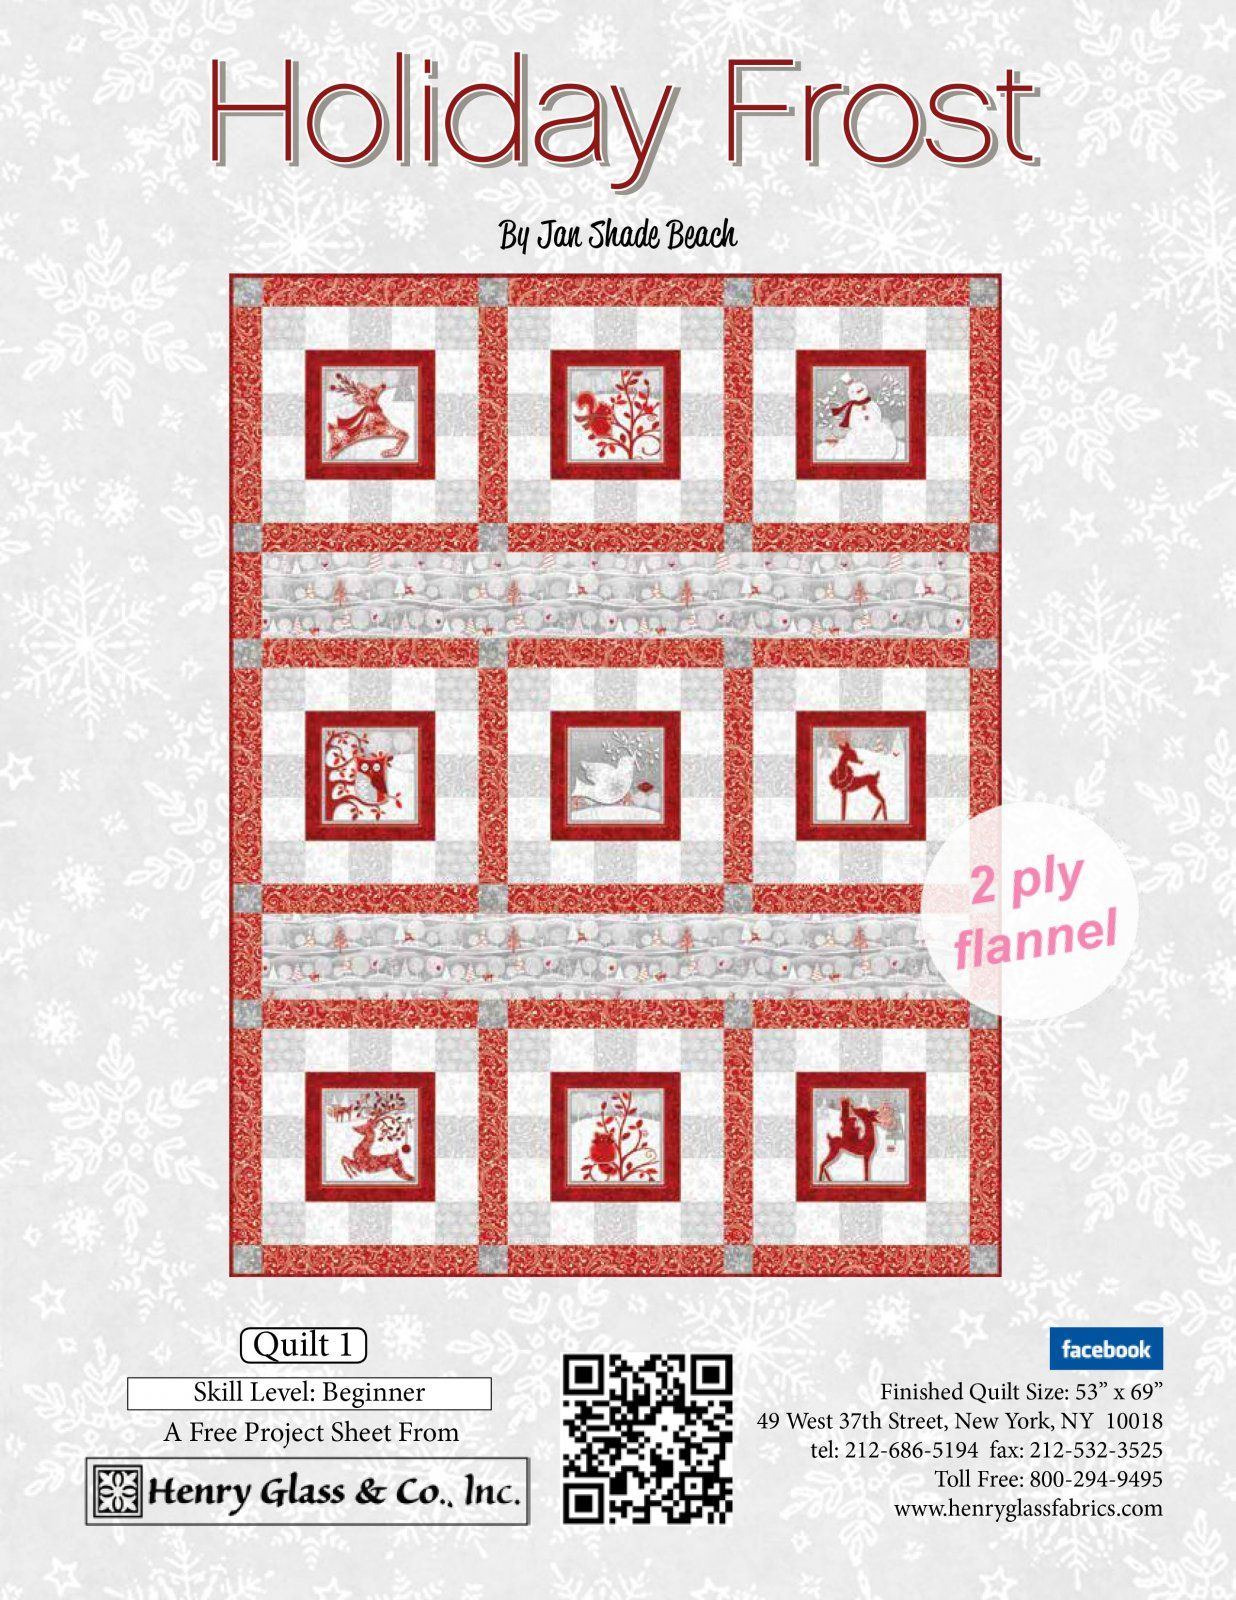 Holiday Frost Quilt Kit